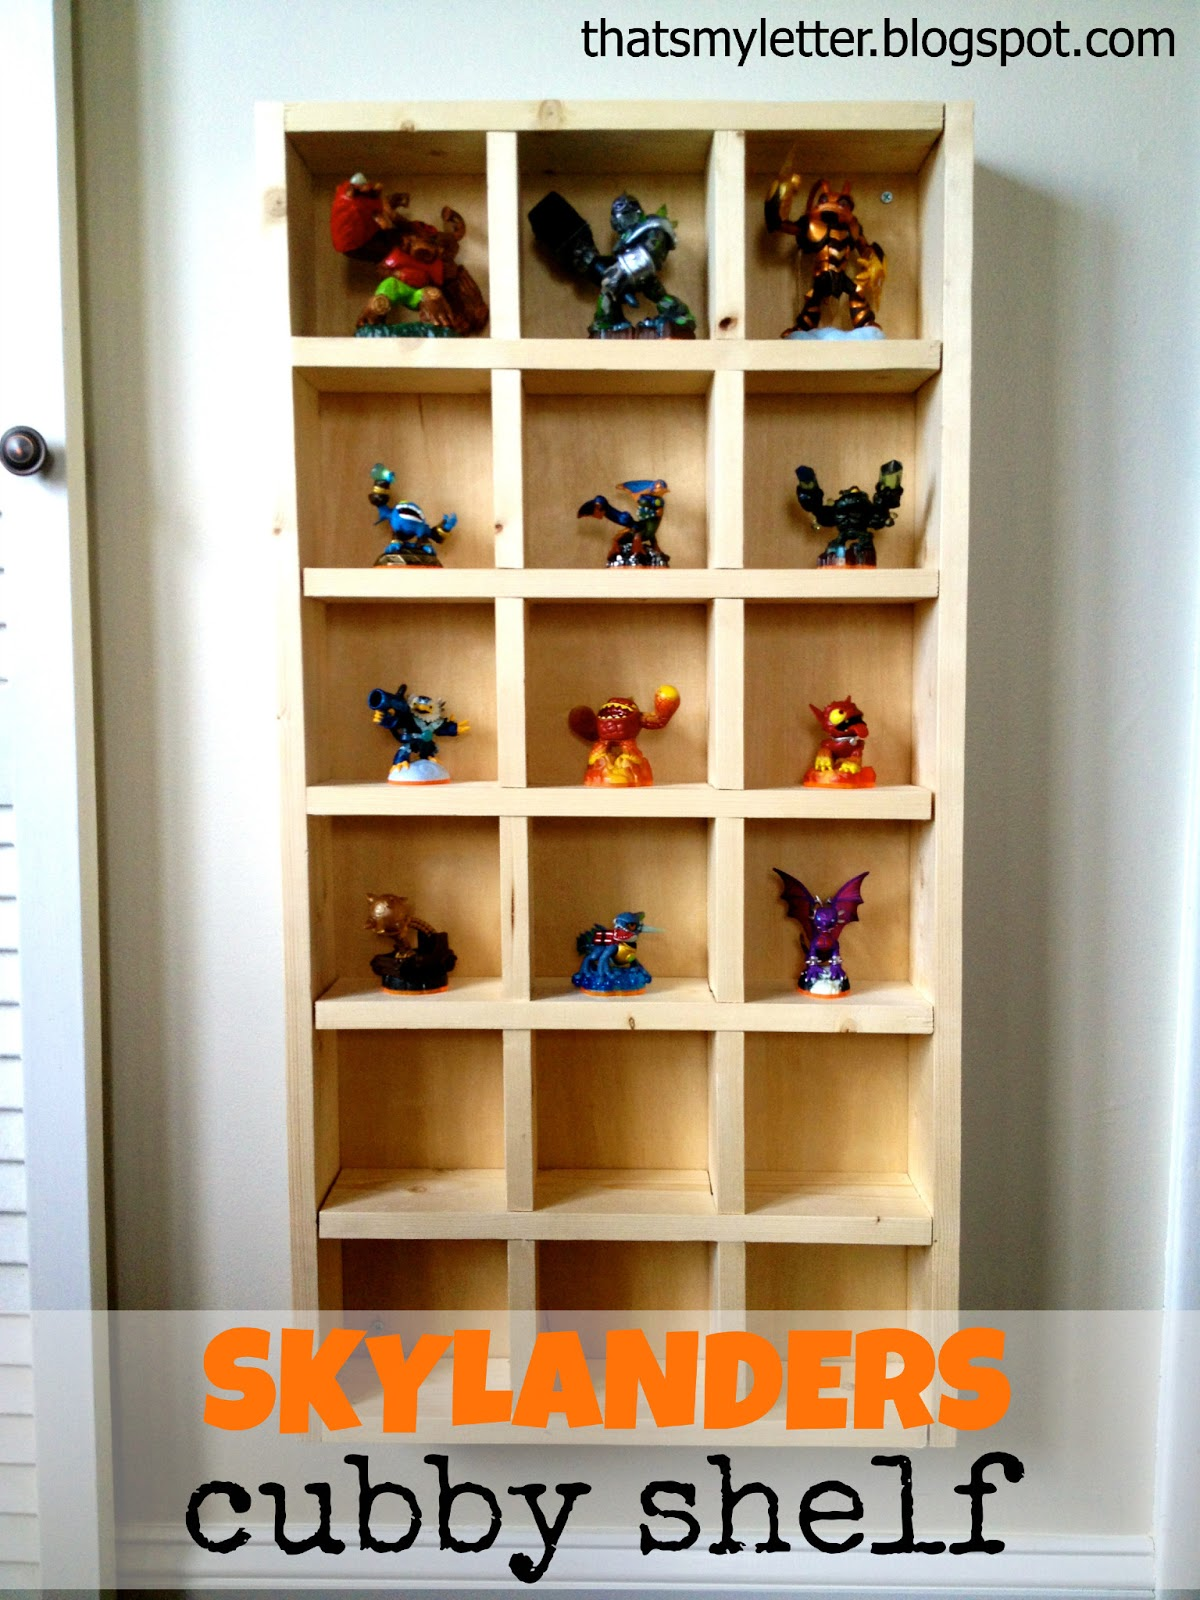 Build The Perfect Cubby Storage Shelf For Skylanders Or Any Play Figurines Using Modified Plans From Ana White